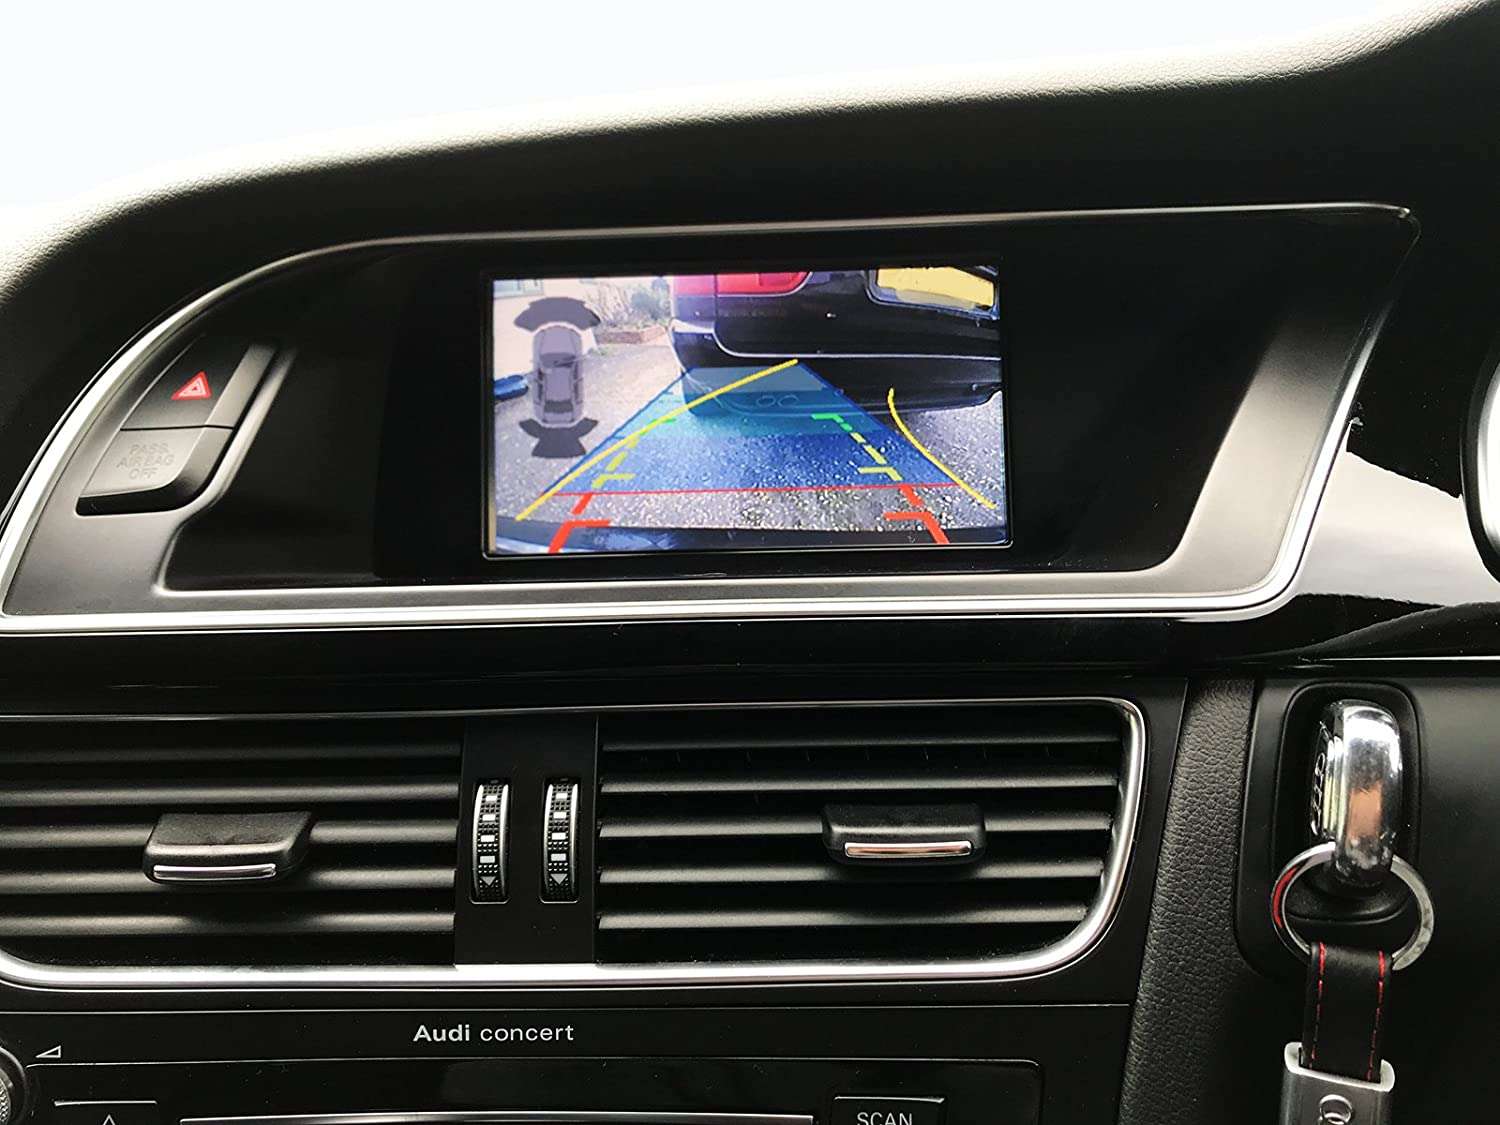 Audi Navigation Upgrade Audi CarPlay with Reversing Camera Interface for  Audi B8/B8.5 A4 A5 Q5 2007-2015 for Concert Symphony Stereo GPS Latest  Technology: ...